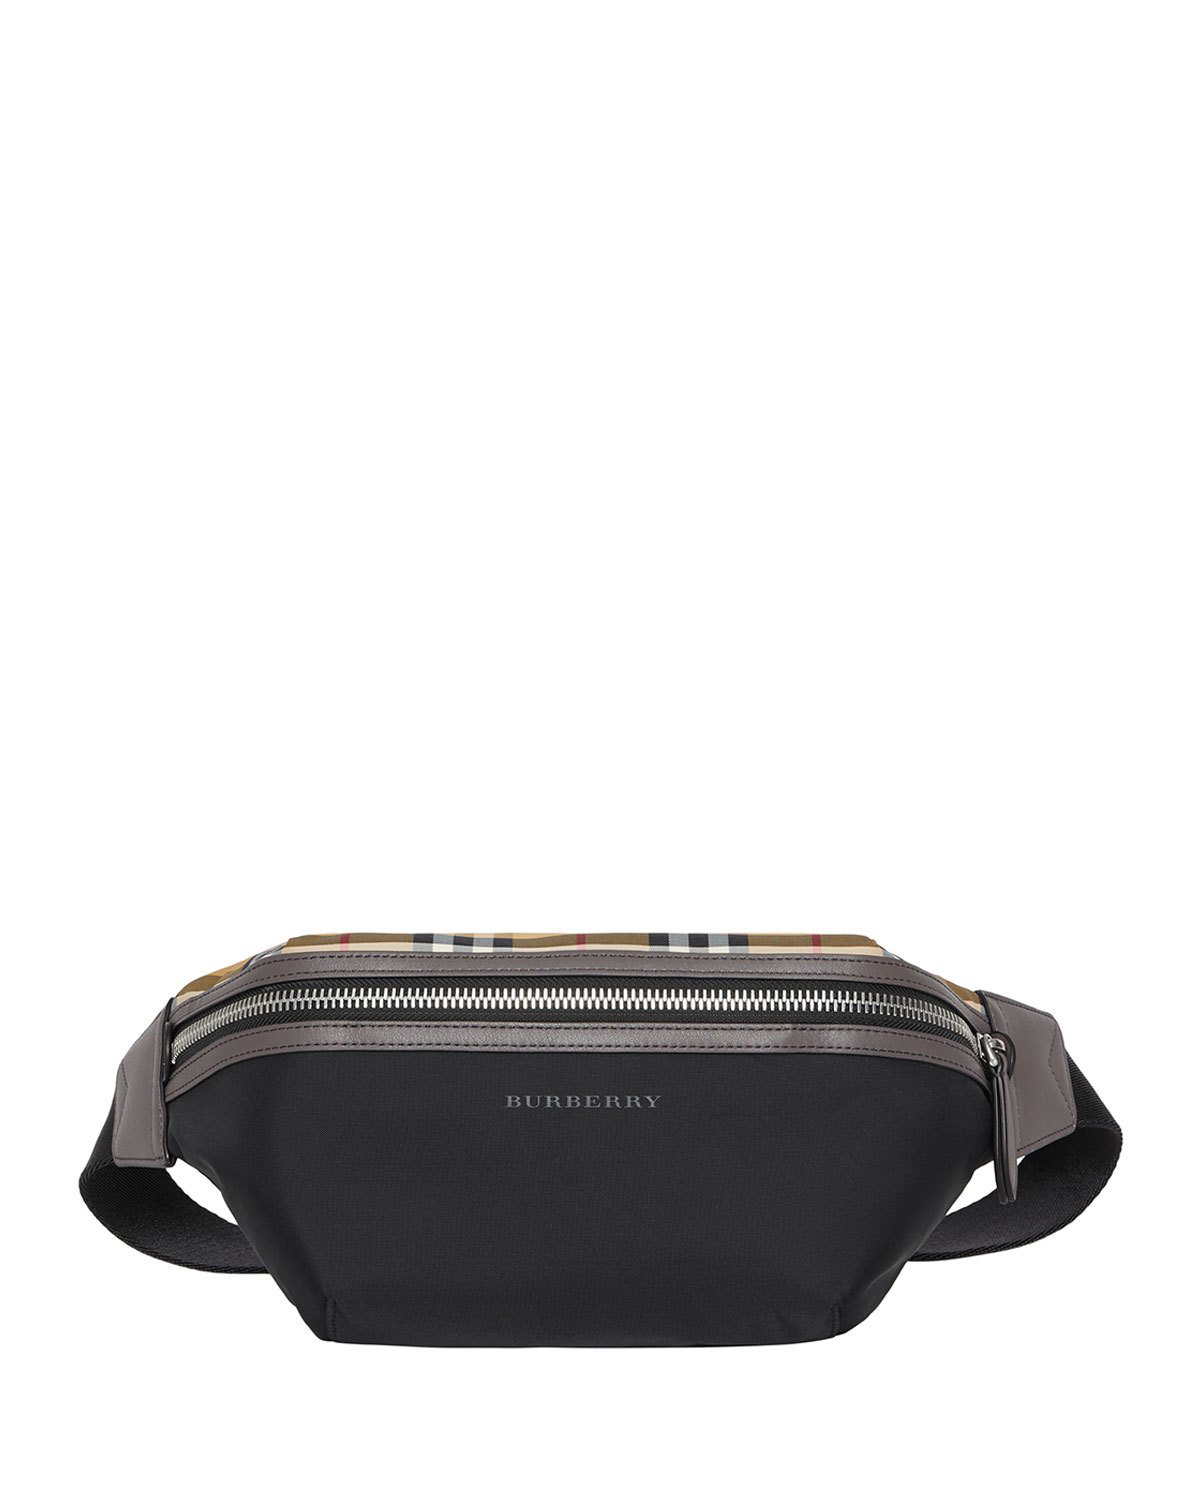 7e92f8205e8 Burberry Medium Vintage Check Nylon Belt Bag In Black. MEMBER ONLY.  630Login to see price